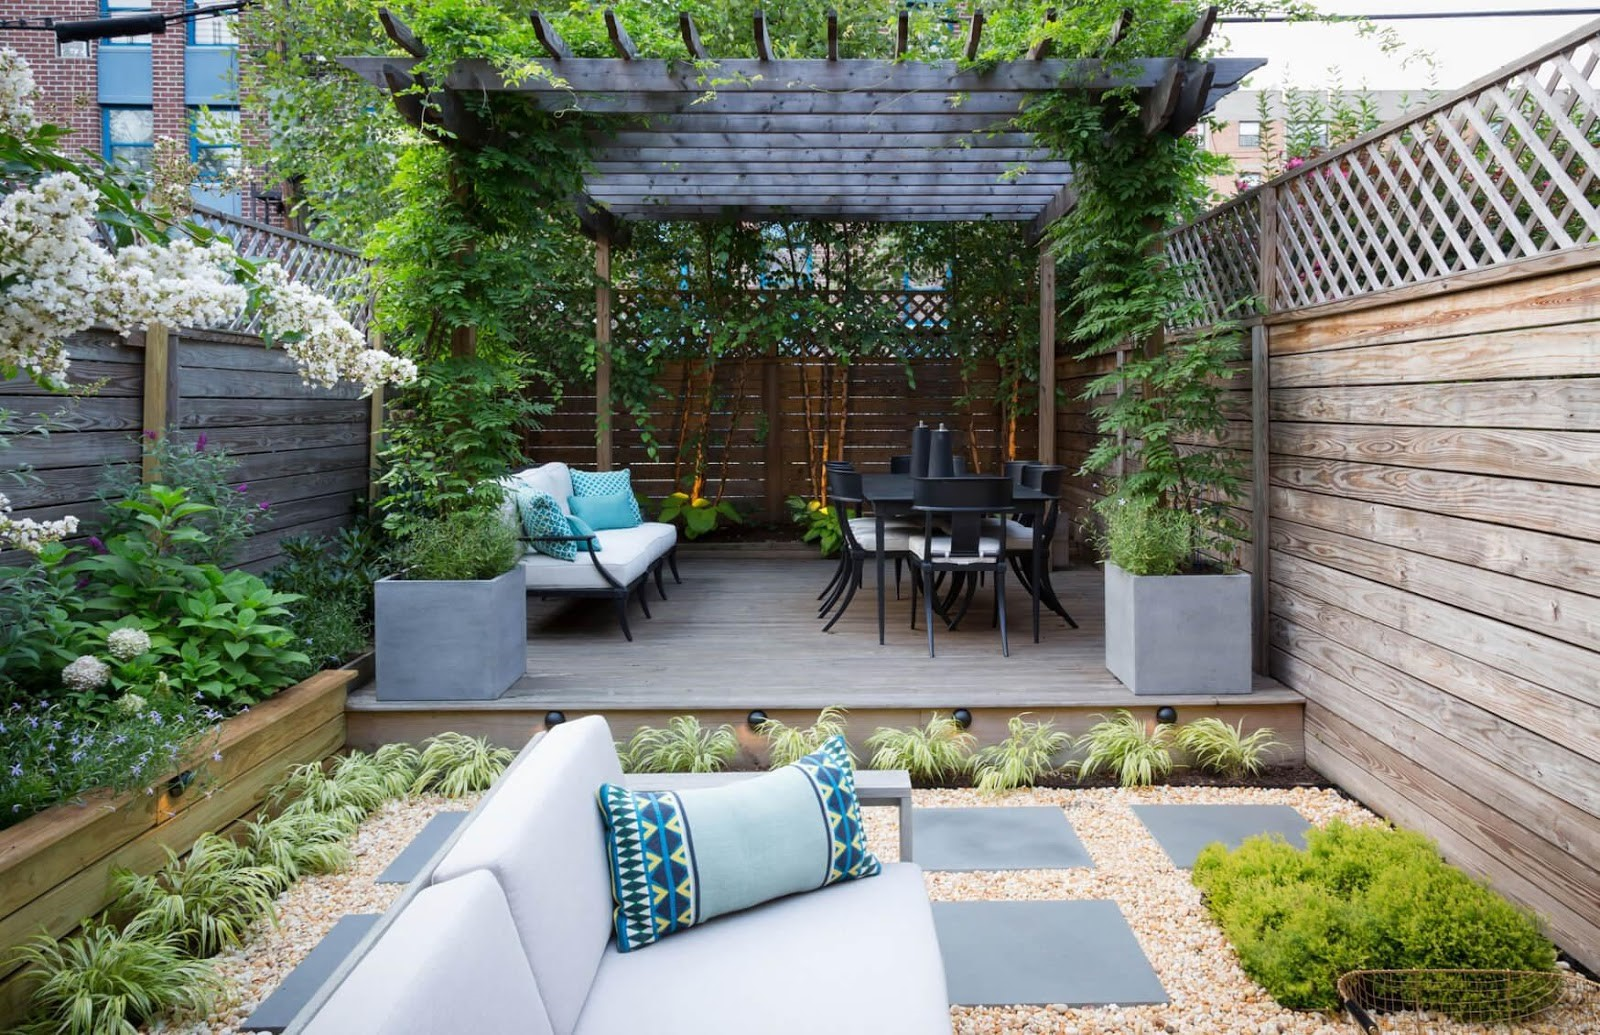 SIMPHOME.COM 10 Tricks How to Upgrade Wood Fence Ideas for Backyard 3.Horizontal and Criss Cross Wooden Fence